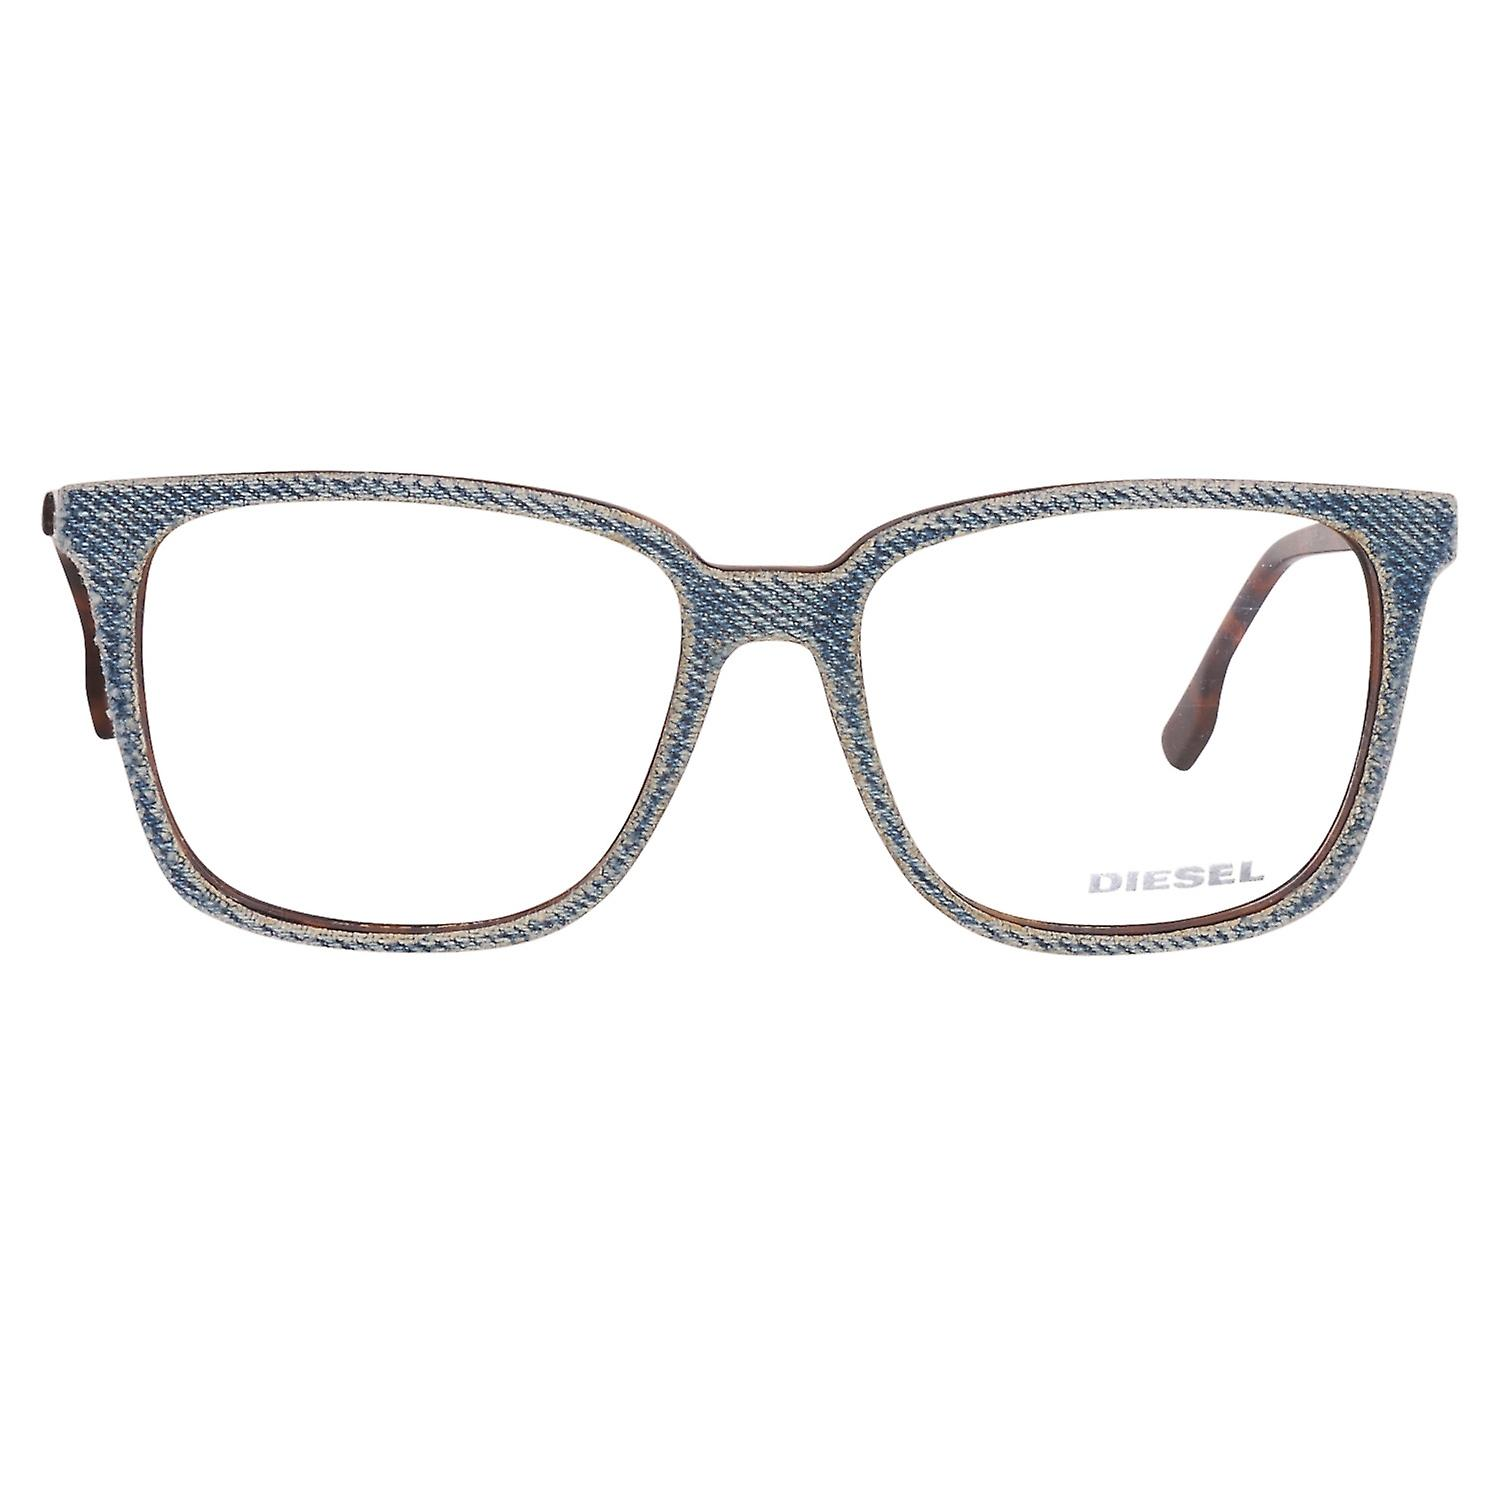 Diesel glasses blue